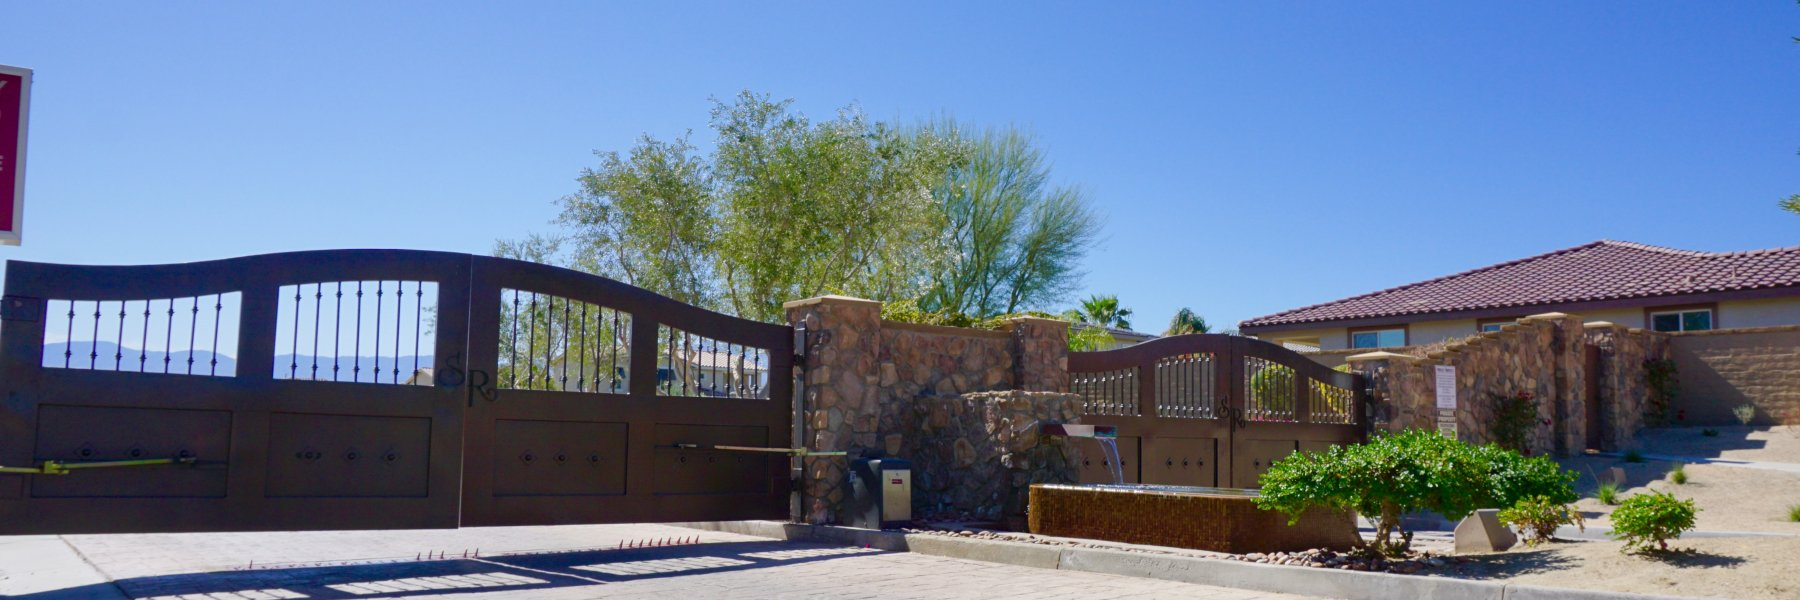 Shadow Ranch is a community of homes in Indio California